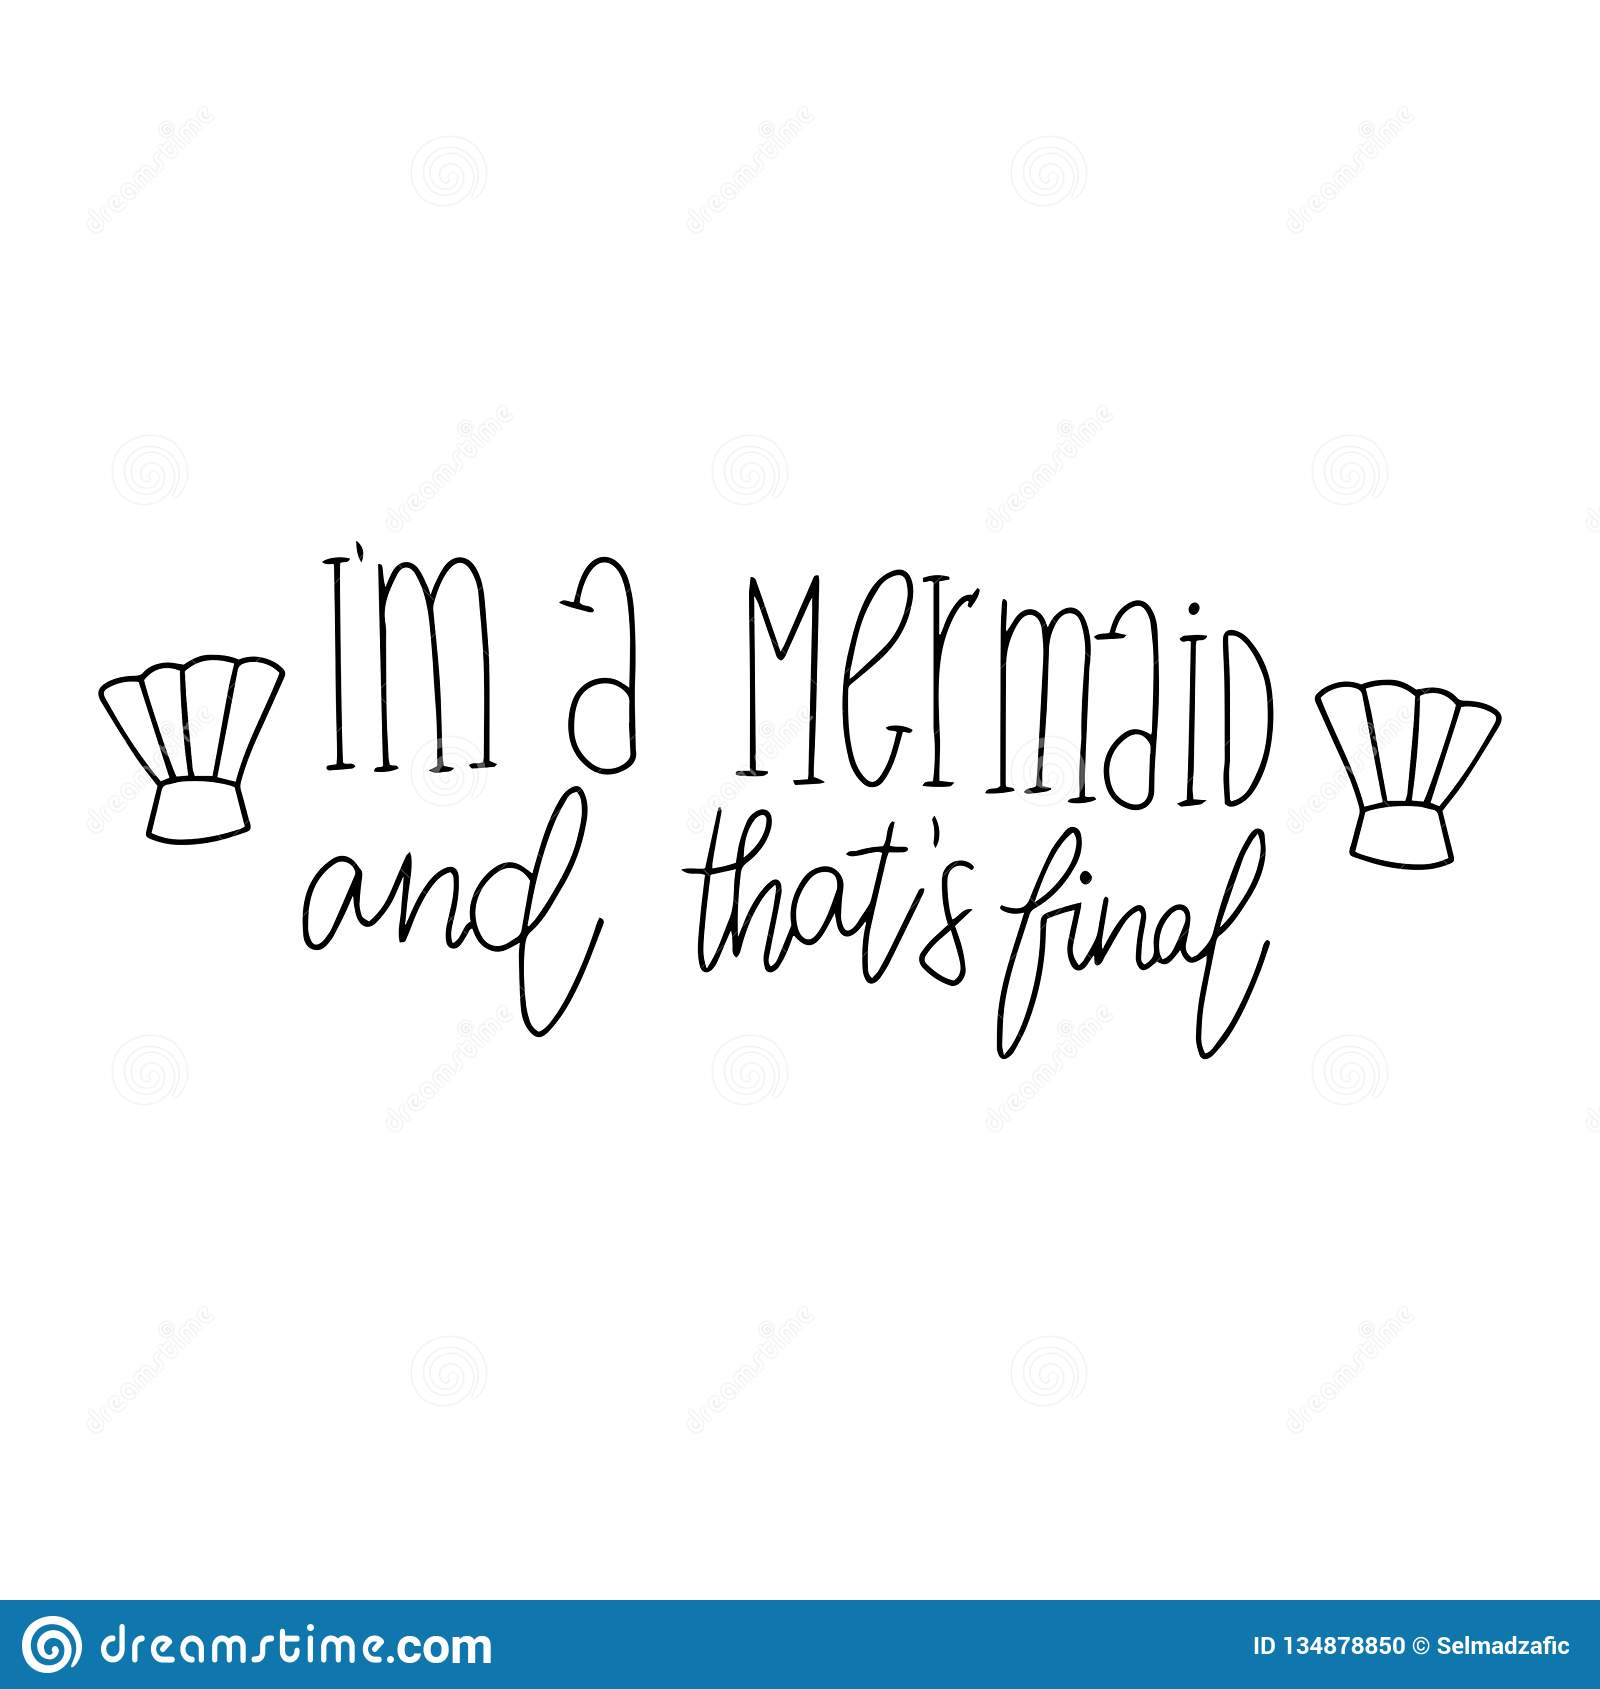 Cute Mermaid Card Hand Drawn Cute Inspirational Mermaid Quotes